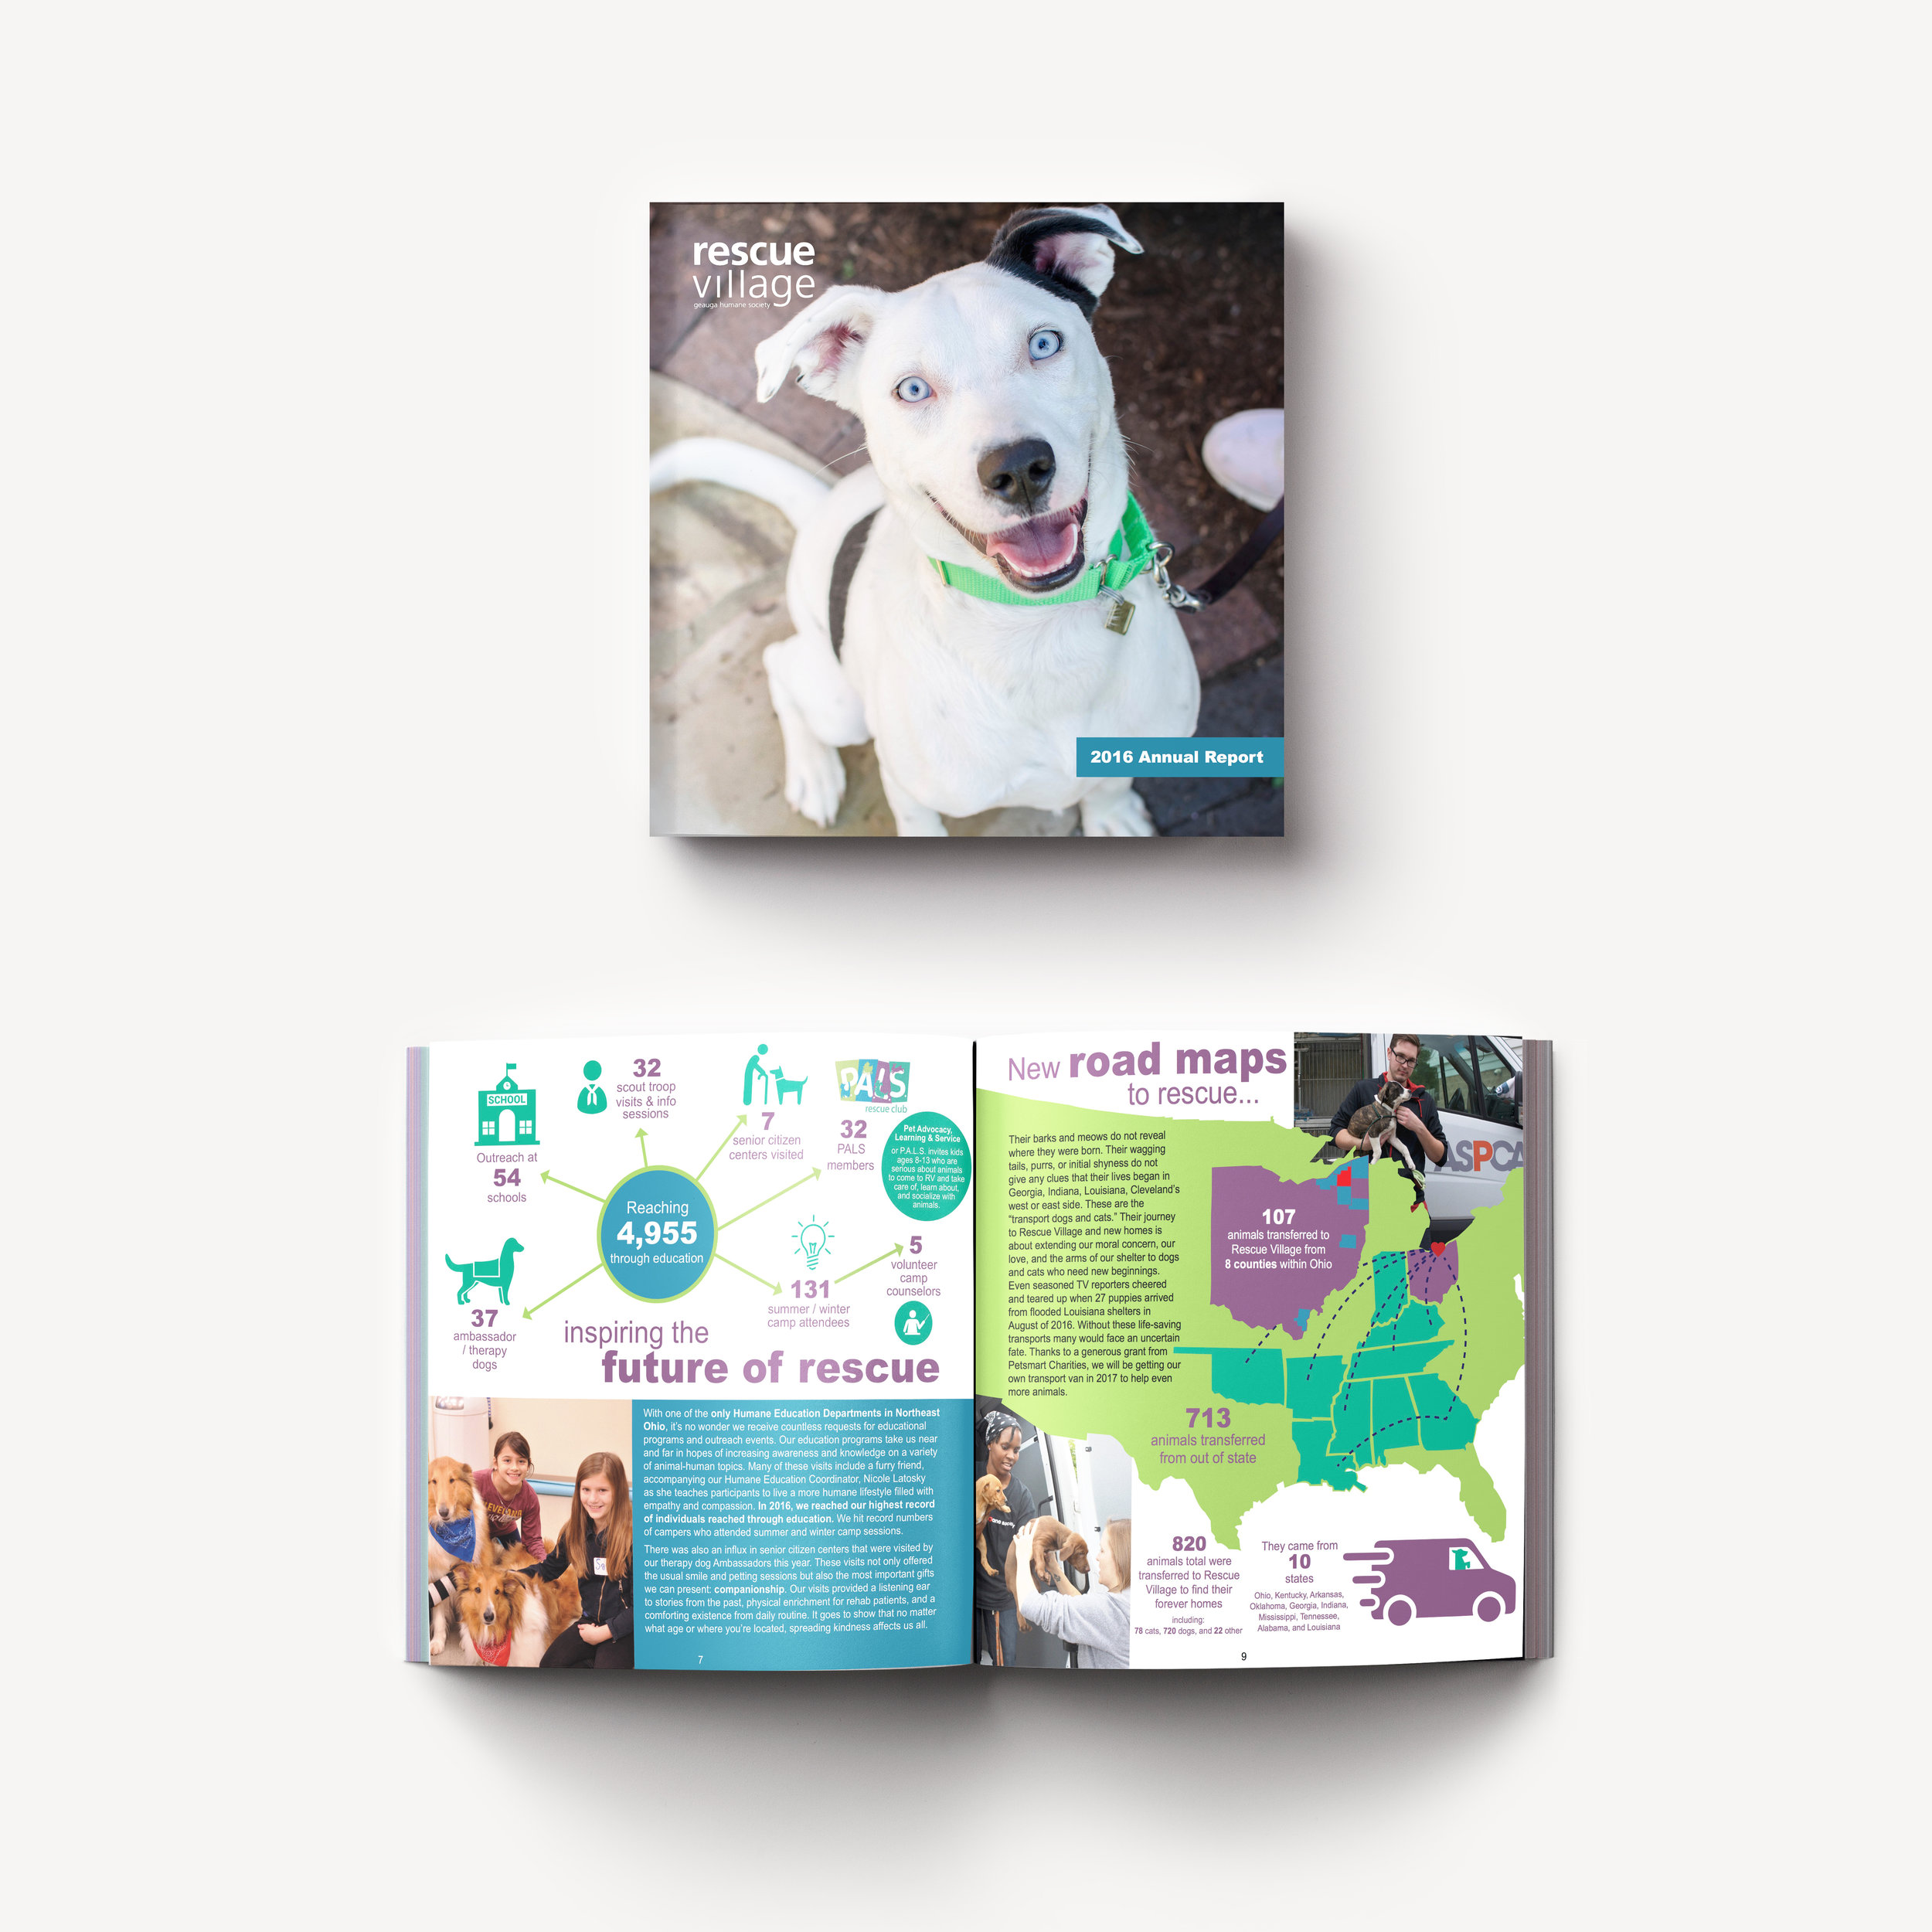 2016 Annual Report Design for Rescue Village. (Design, photography, and art direction by Leah Backo)